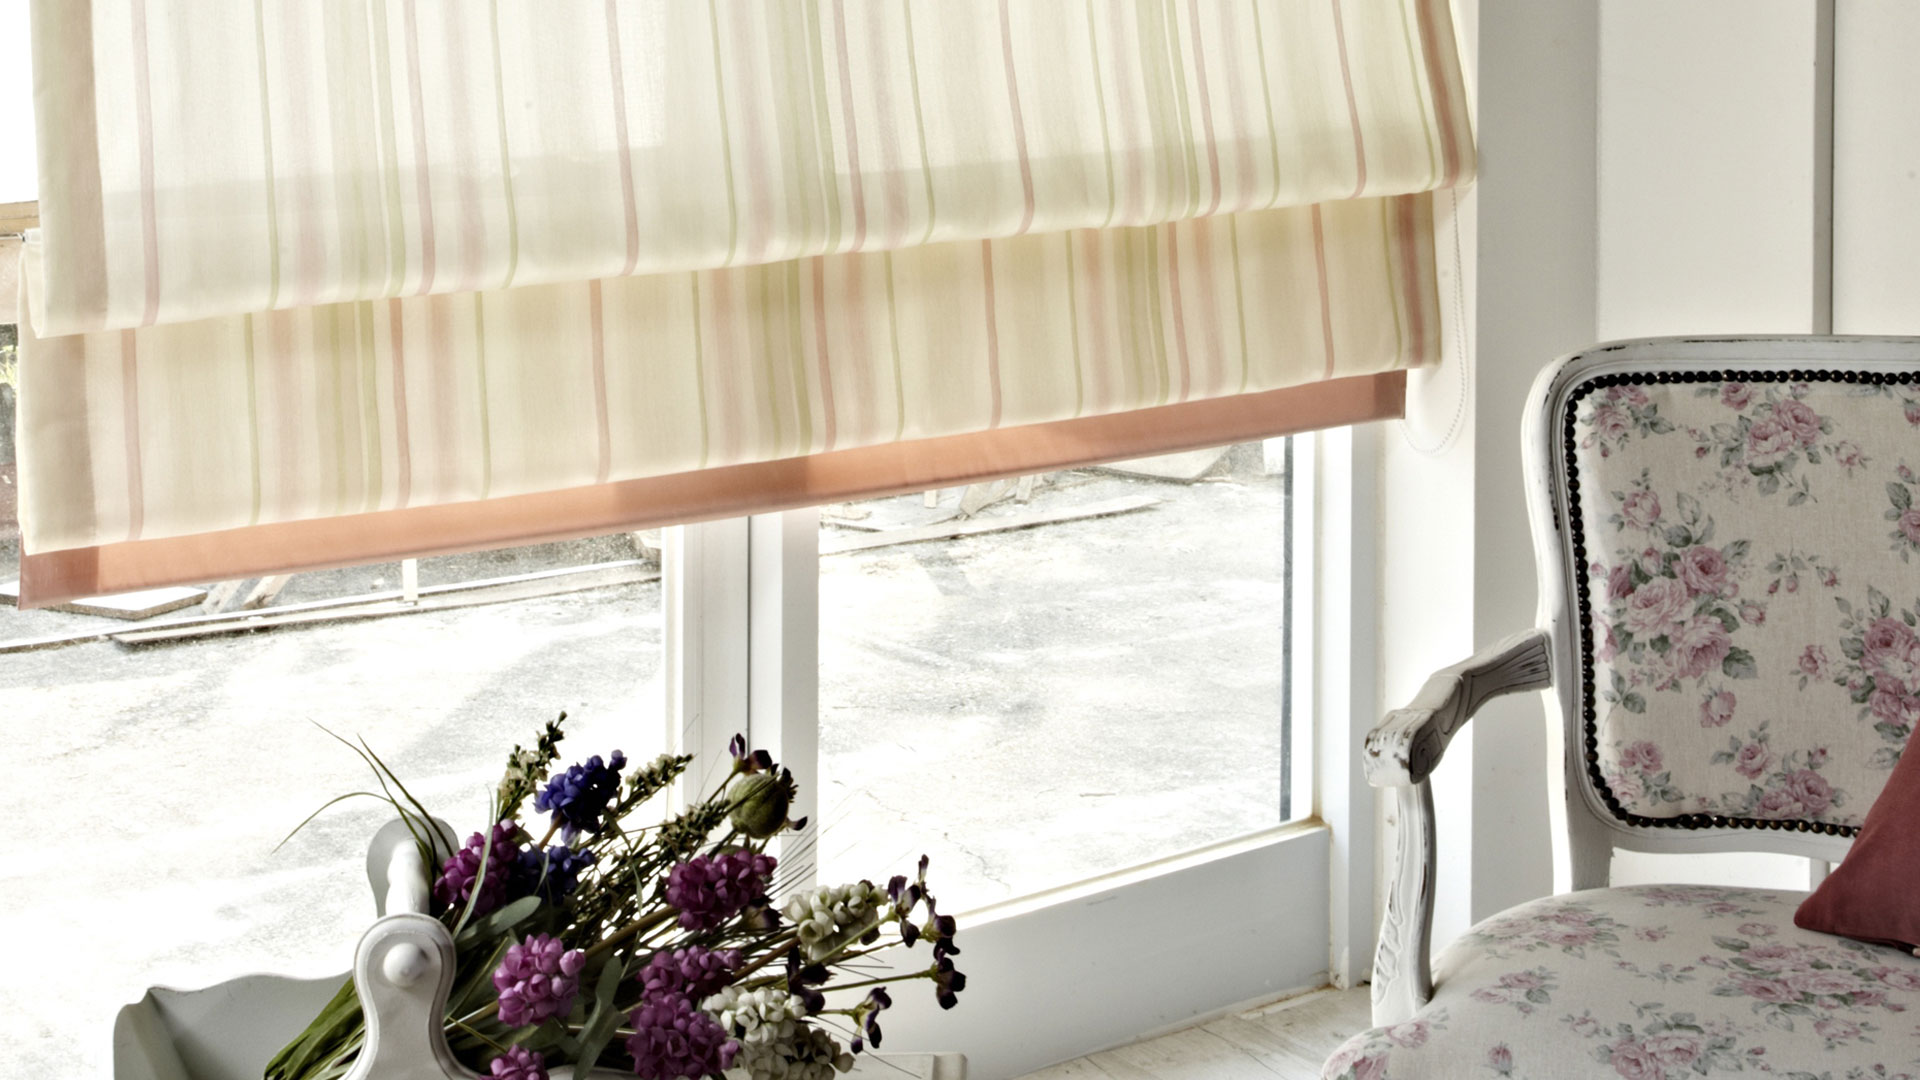 and choose fit choosing blinds jysk main to how fitting blog the it curtains right do